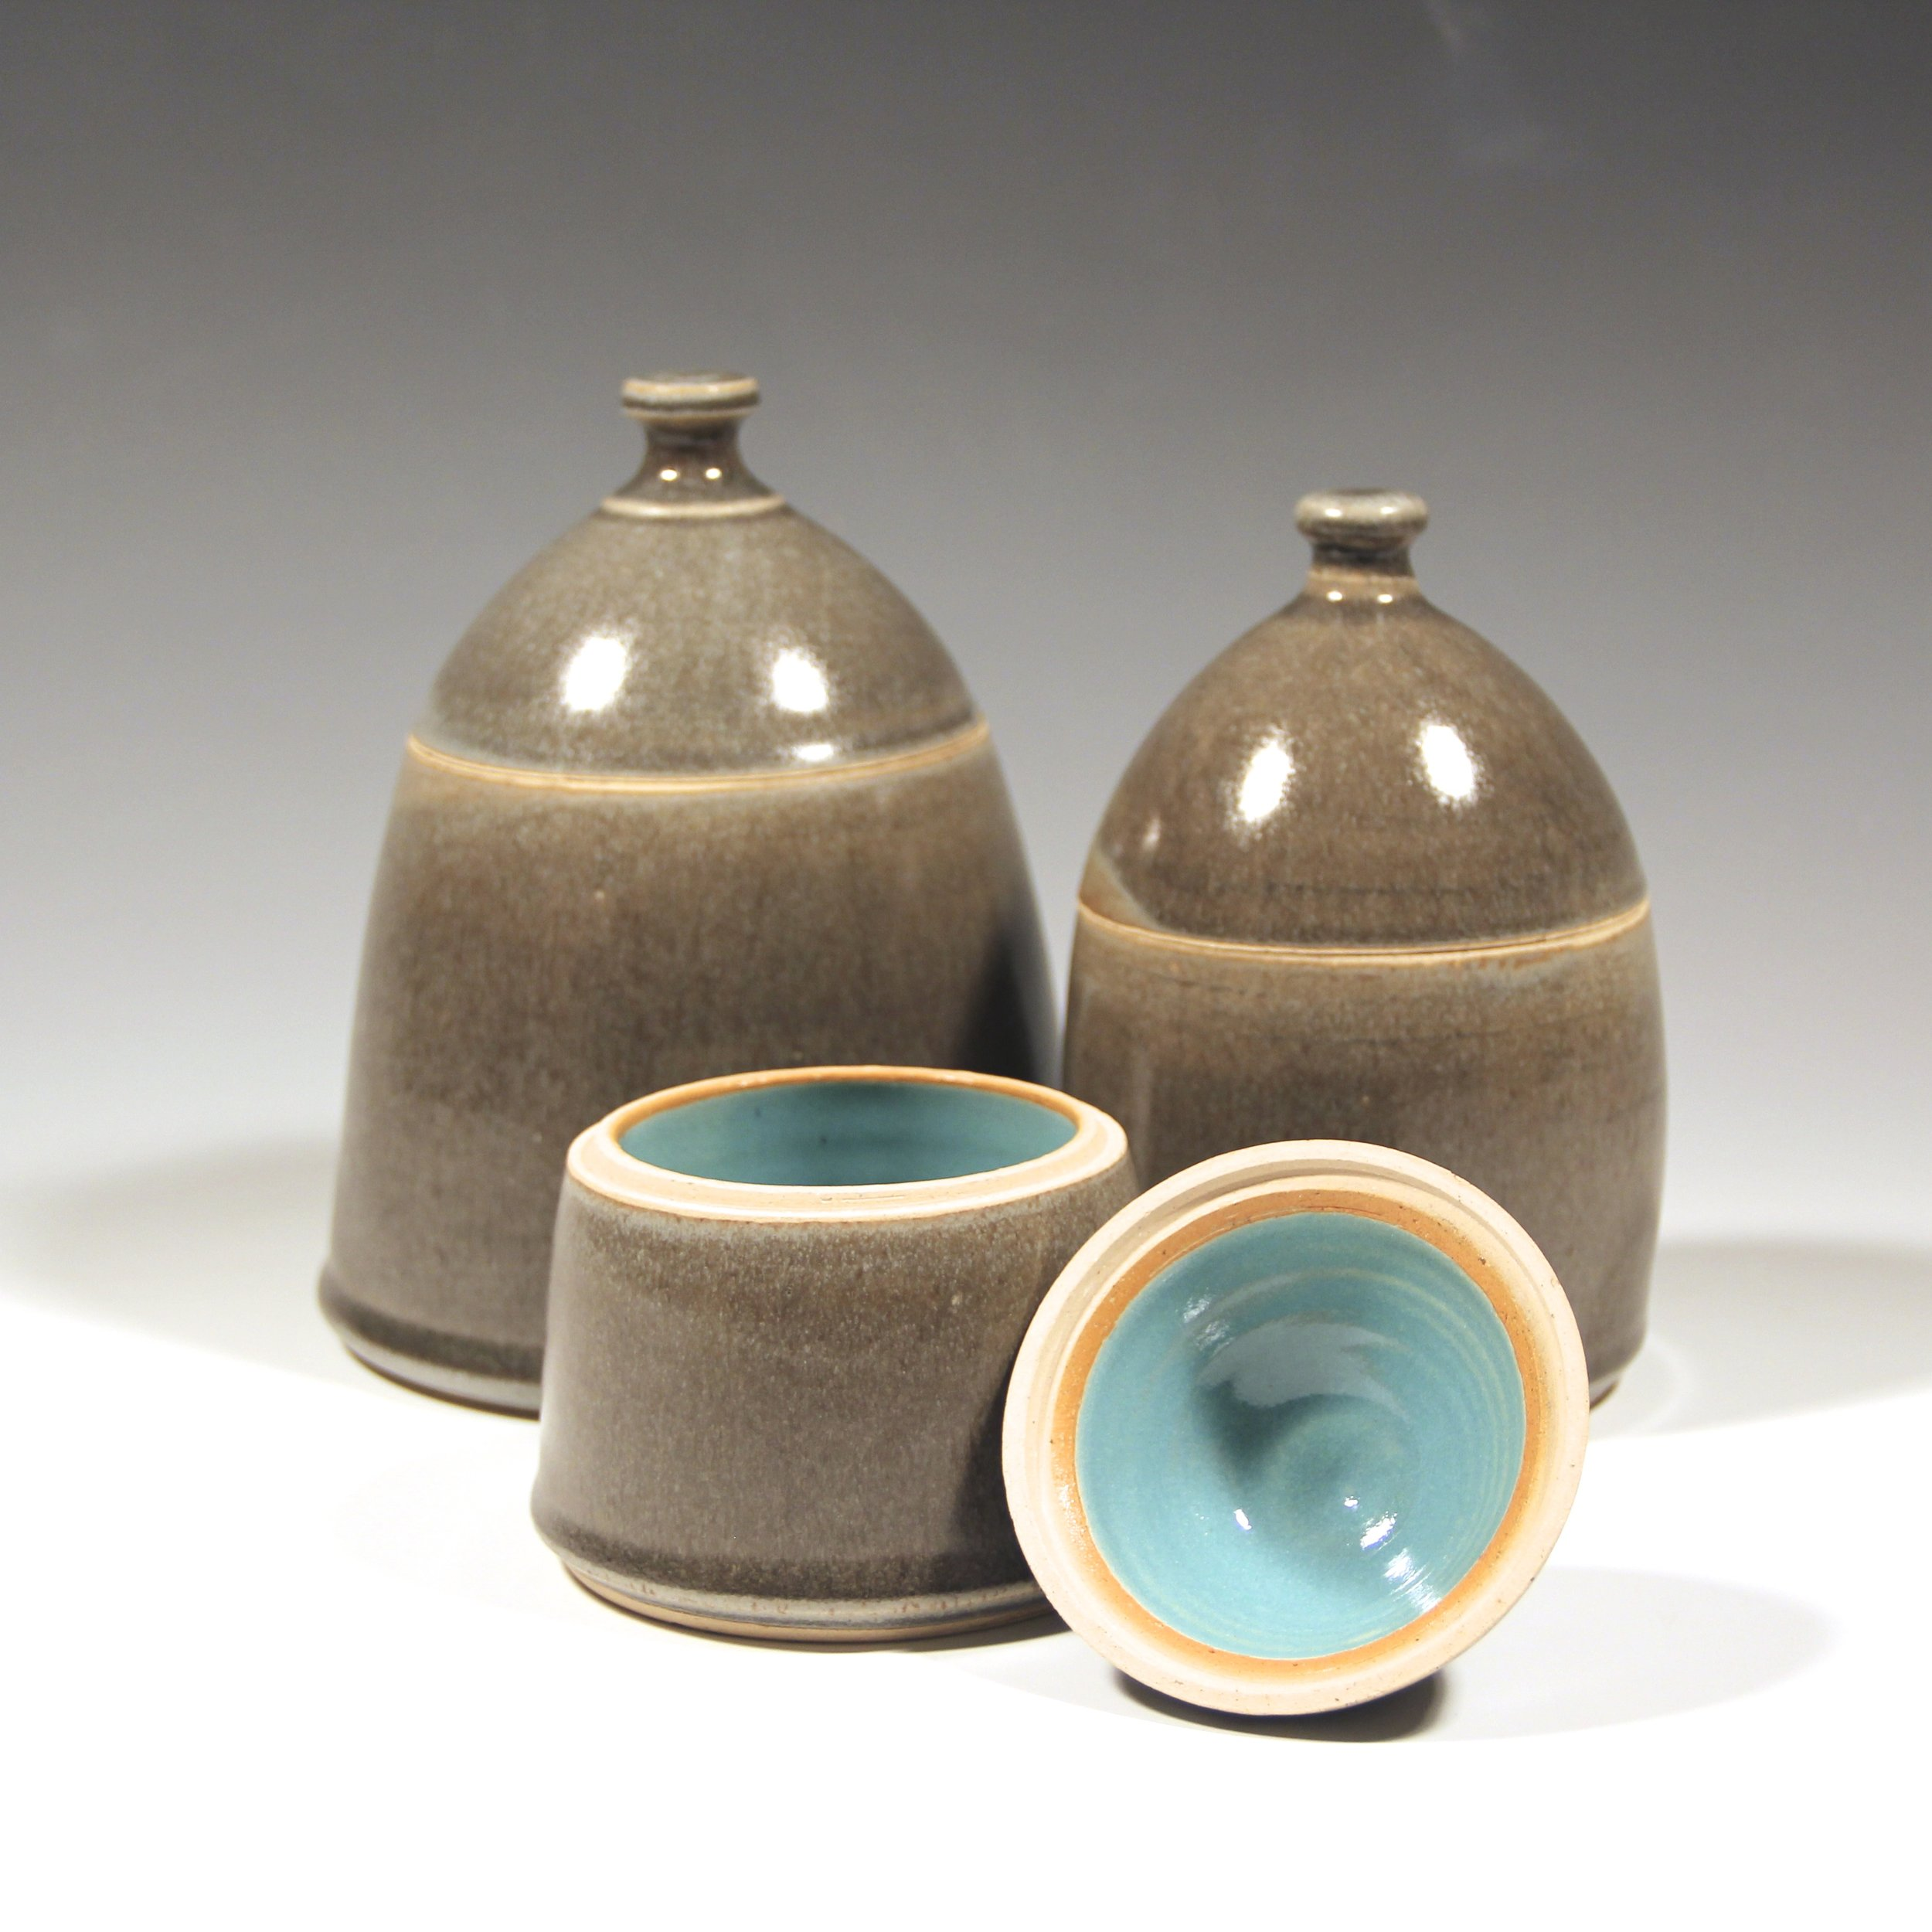 AUDREY LONG- AUDREY LONG CERAMICS - Wheel-thrown clay, covered in glazes I make, in kilns I fire, using designs I've refined over time, field-tested and cupboard approved.With dirt, my hands, glass & fire. I make functional ceramics, pieces that are well-thought and utilitarian, each hand-thrown and individually glazed in shapes and colors that feel good. I make vessels that you want to hold in your hand, drink your coffee from and share with the people you love.